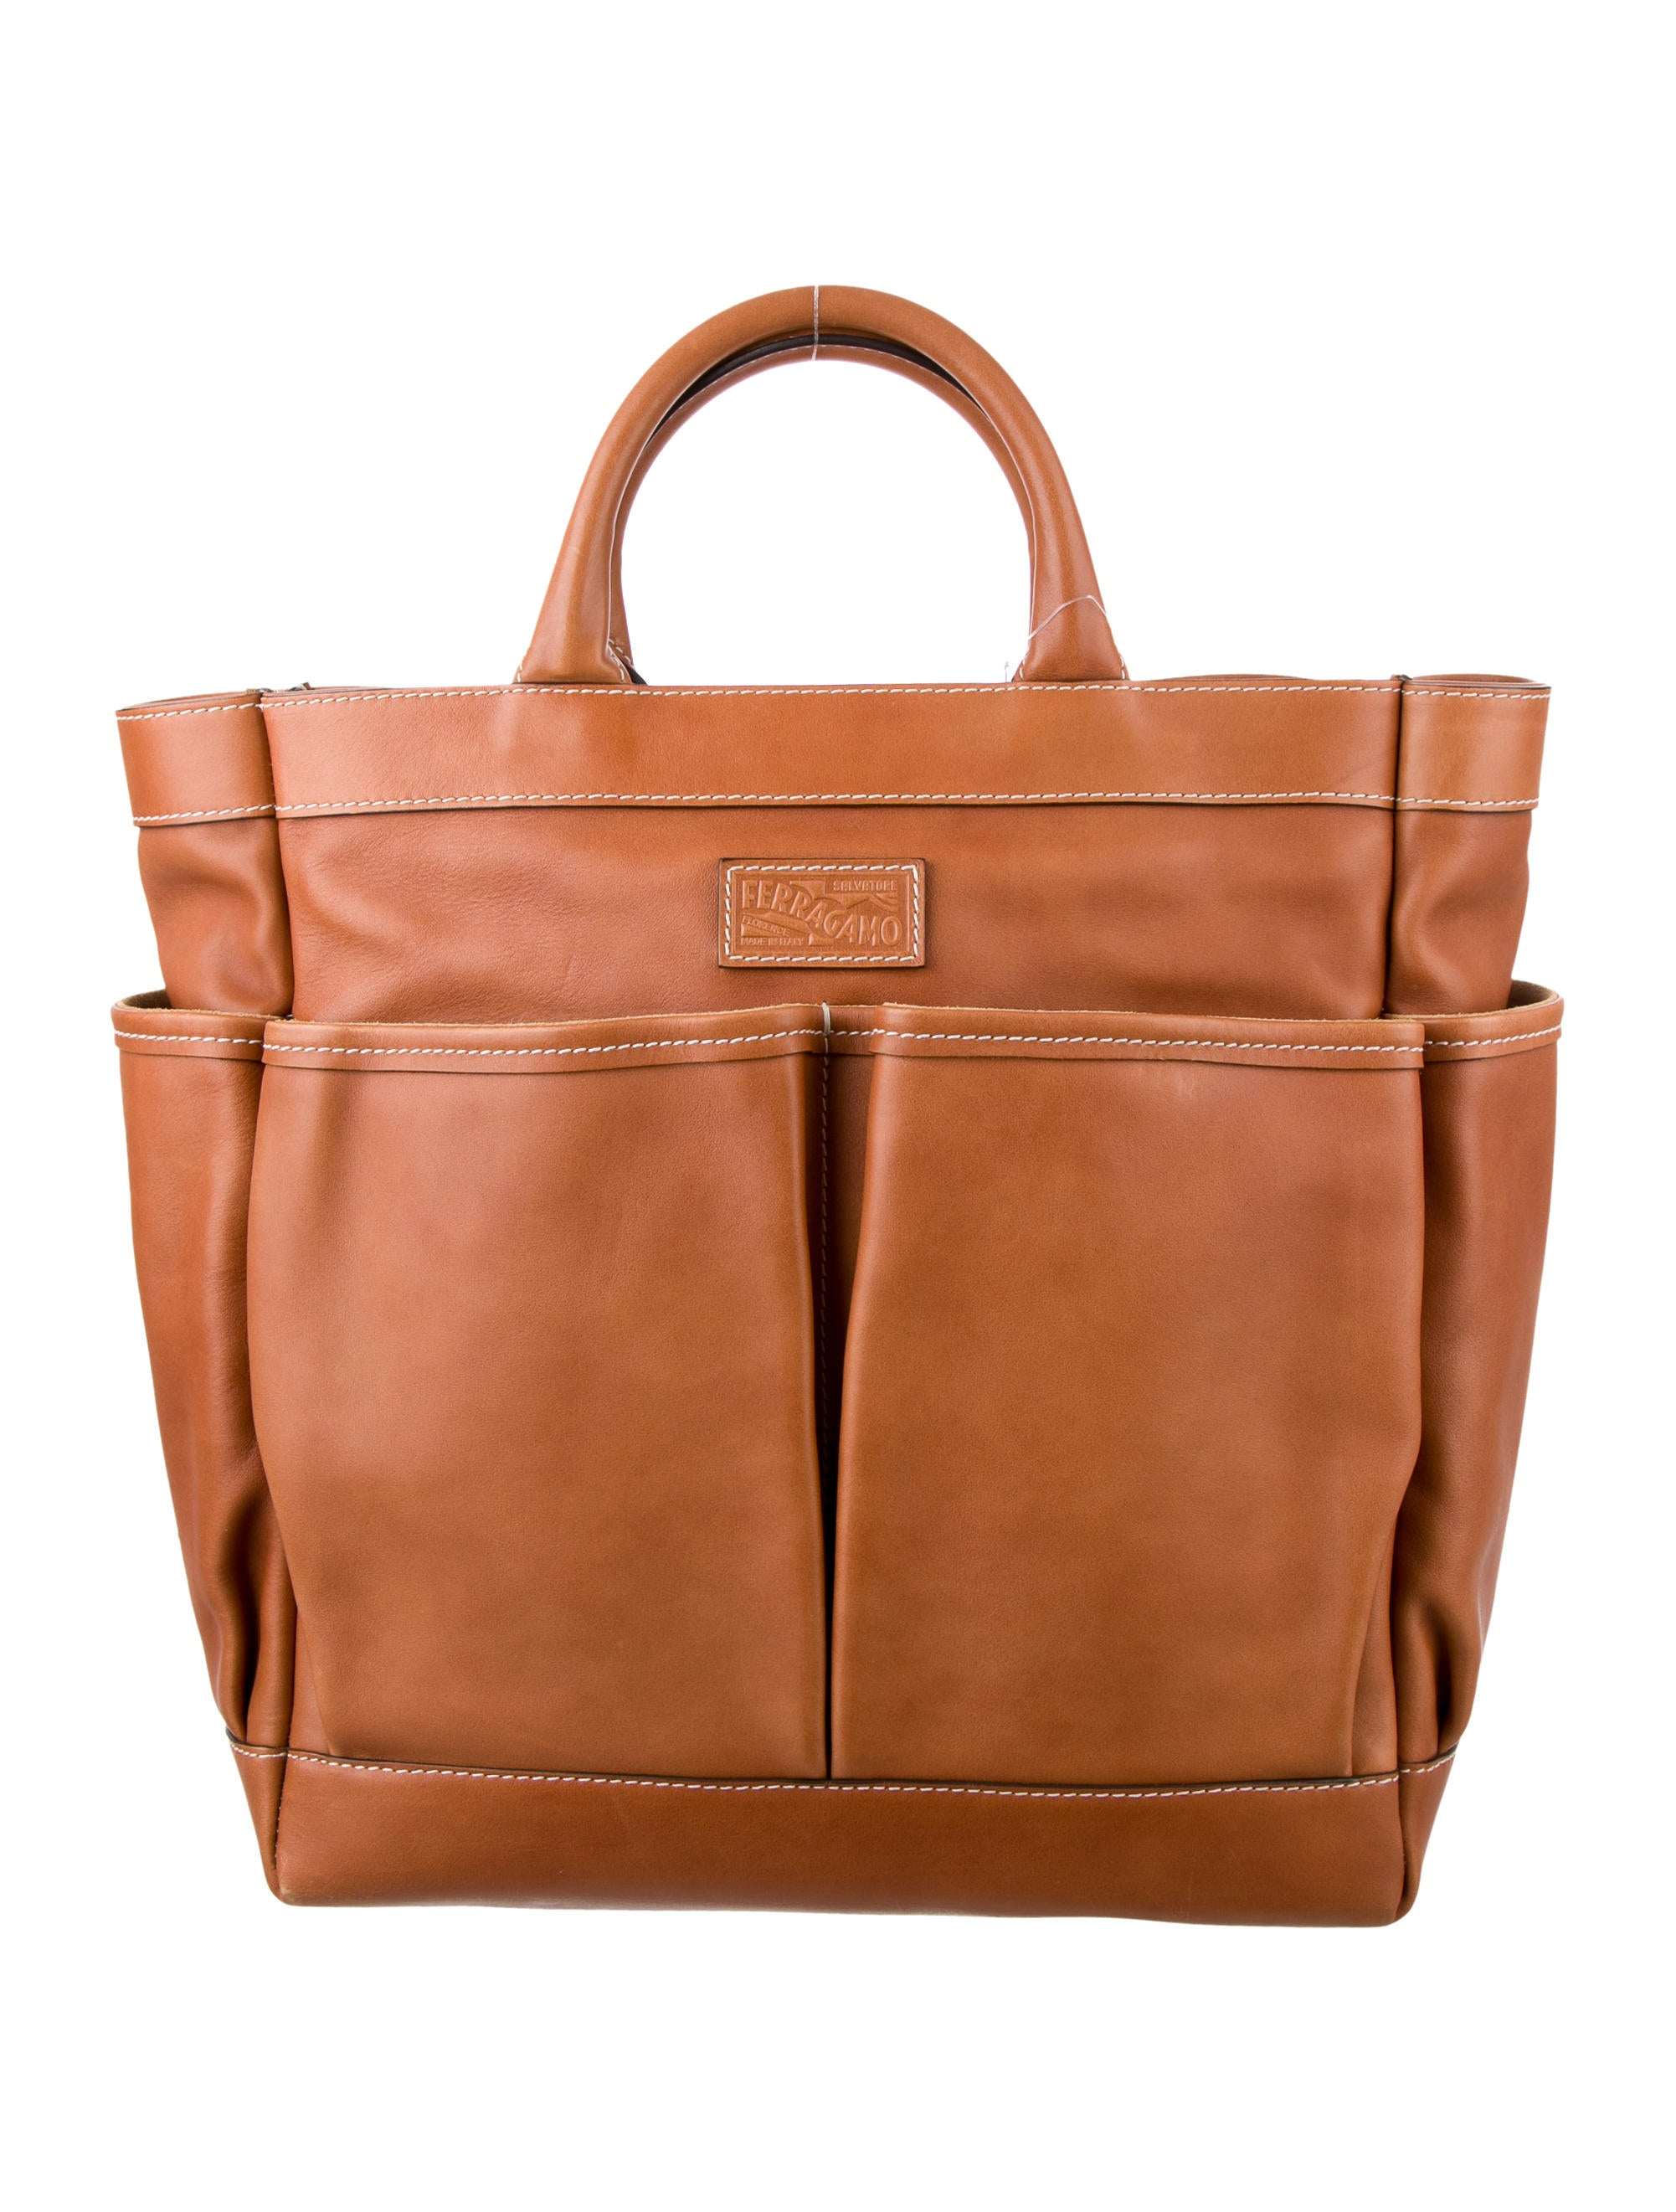 308d82ccf3b1 Salvatore Ferragamo Leather Travel Tote w  Tags - Bags - SAL43763 ...